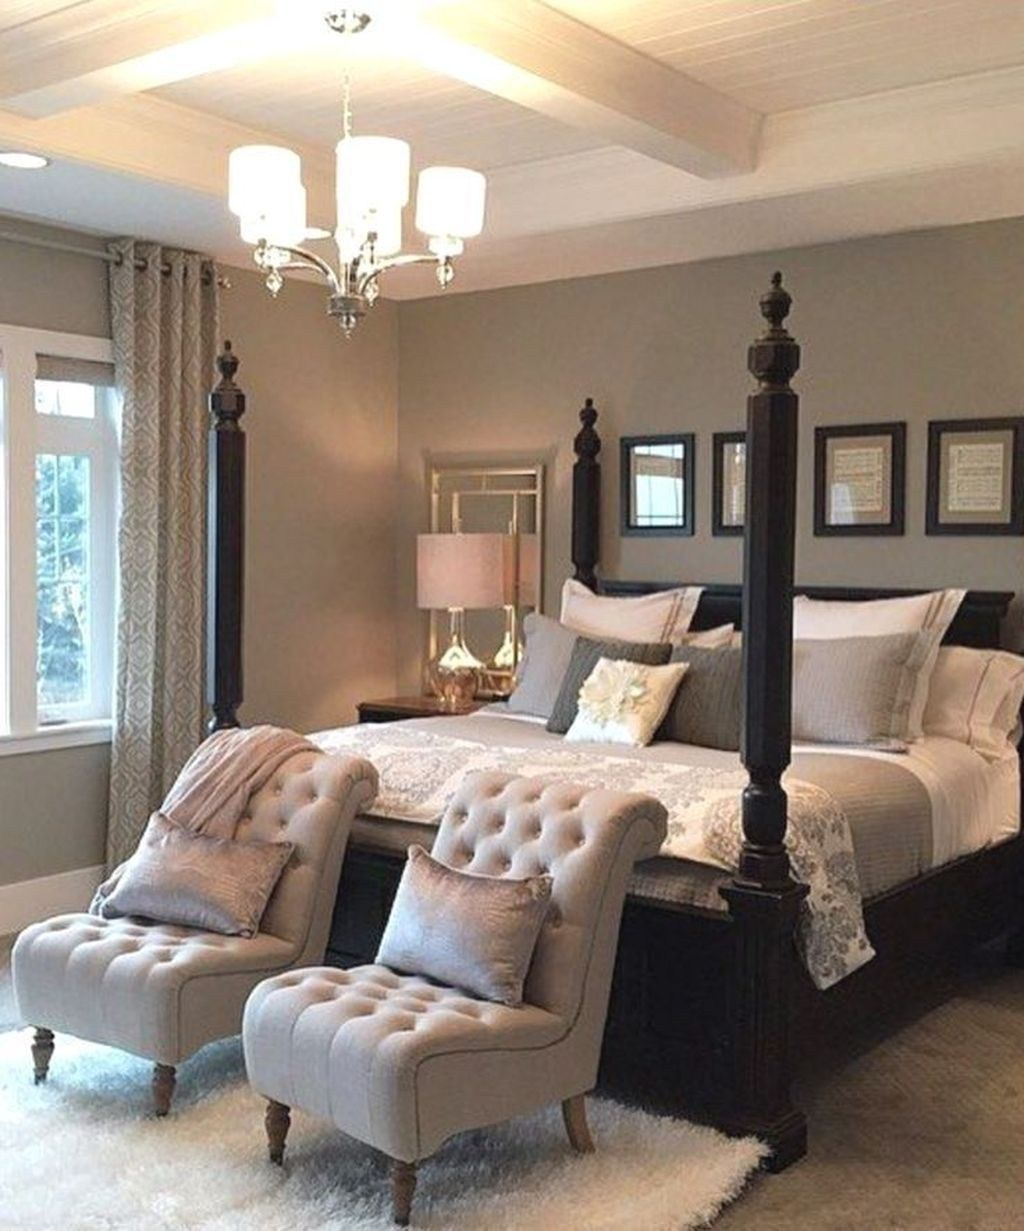 19+ Good Ideas For Master Bedroom Decorating Ideas